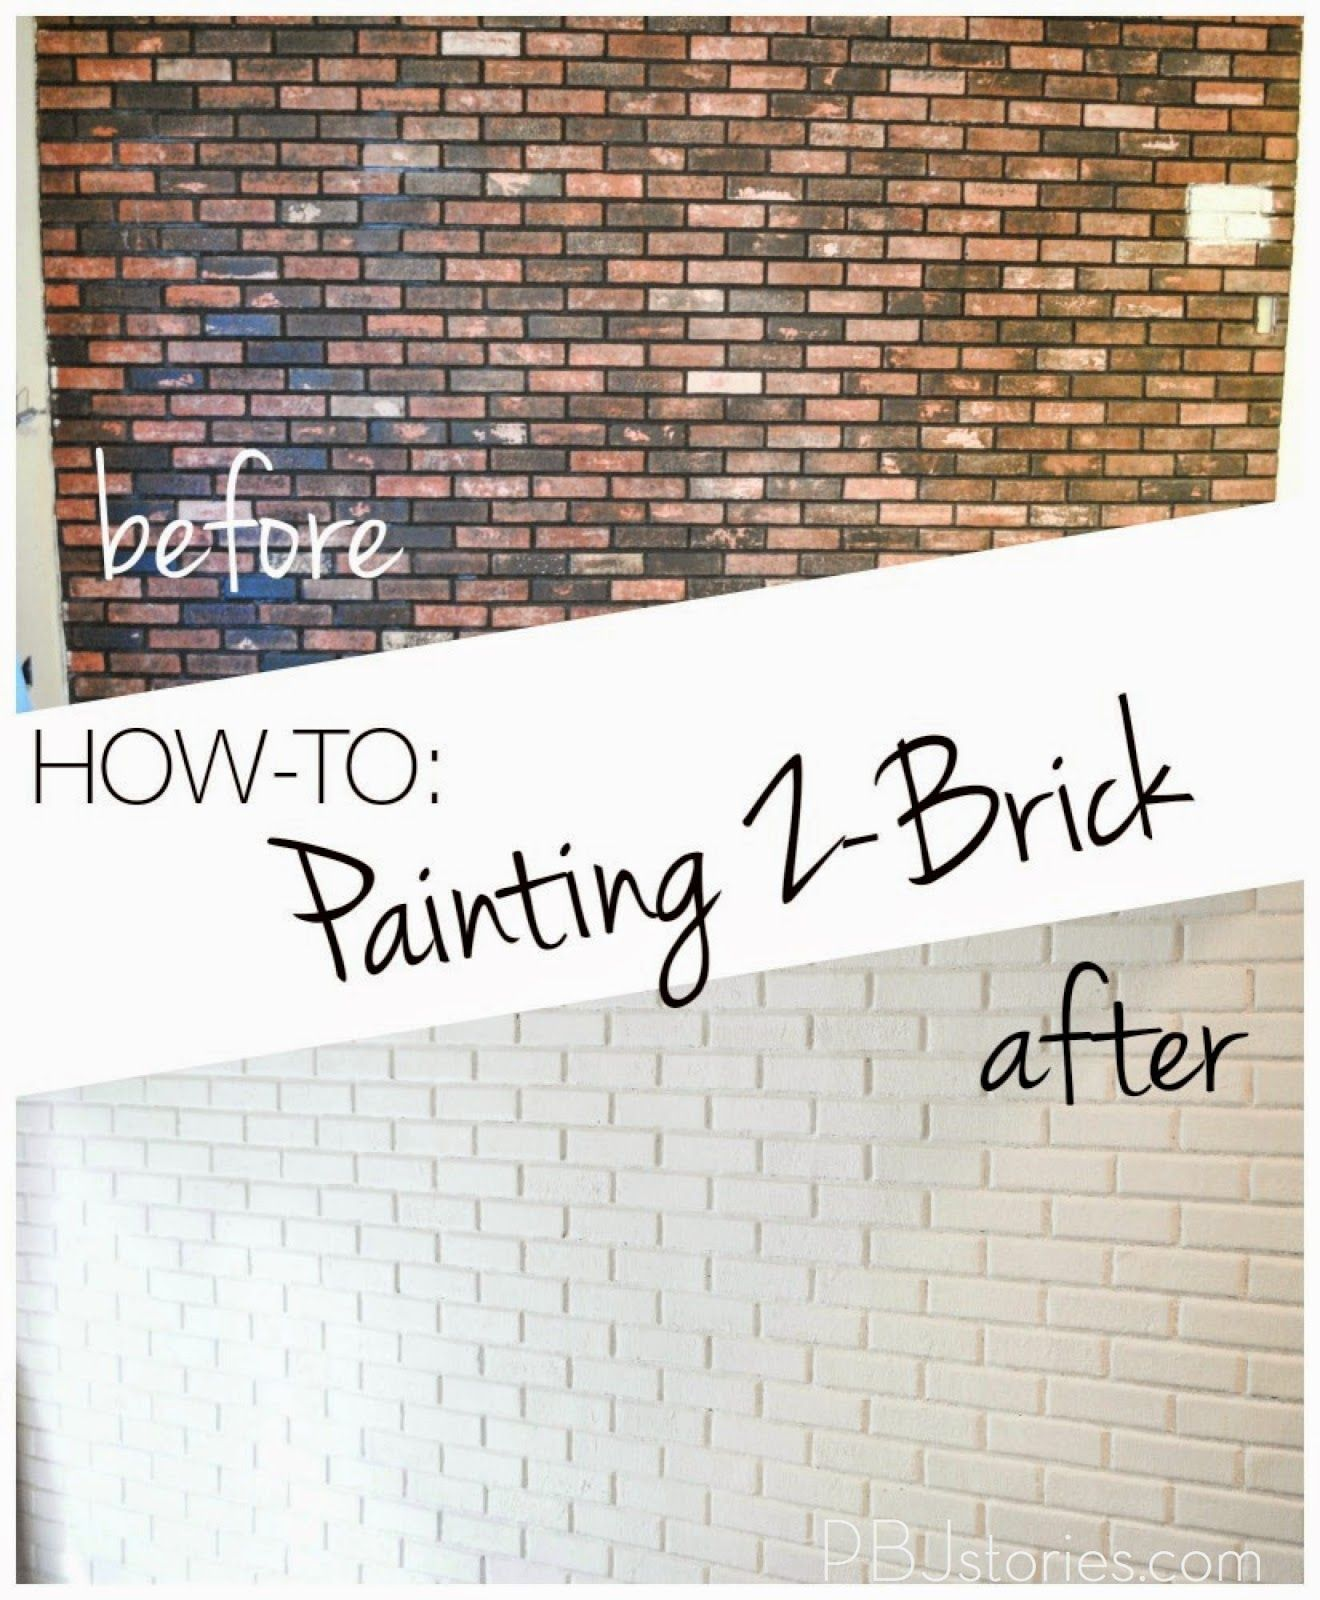 Interior Brick Walls How To Paint An Interior Brick Wall Pbjstories